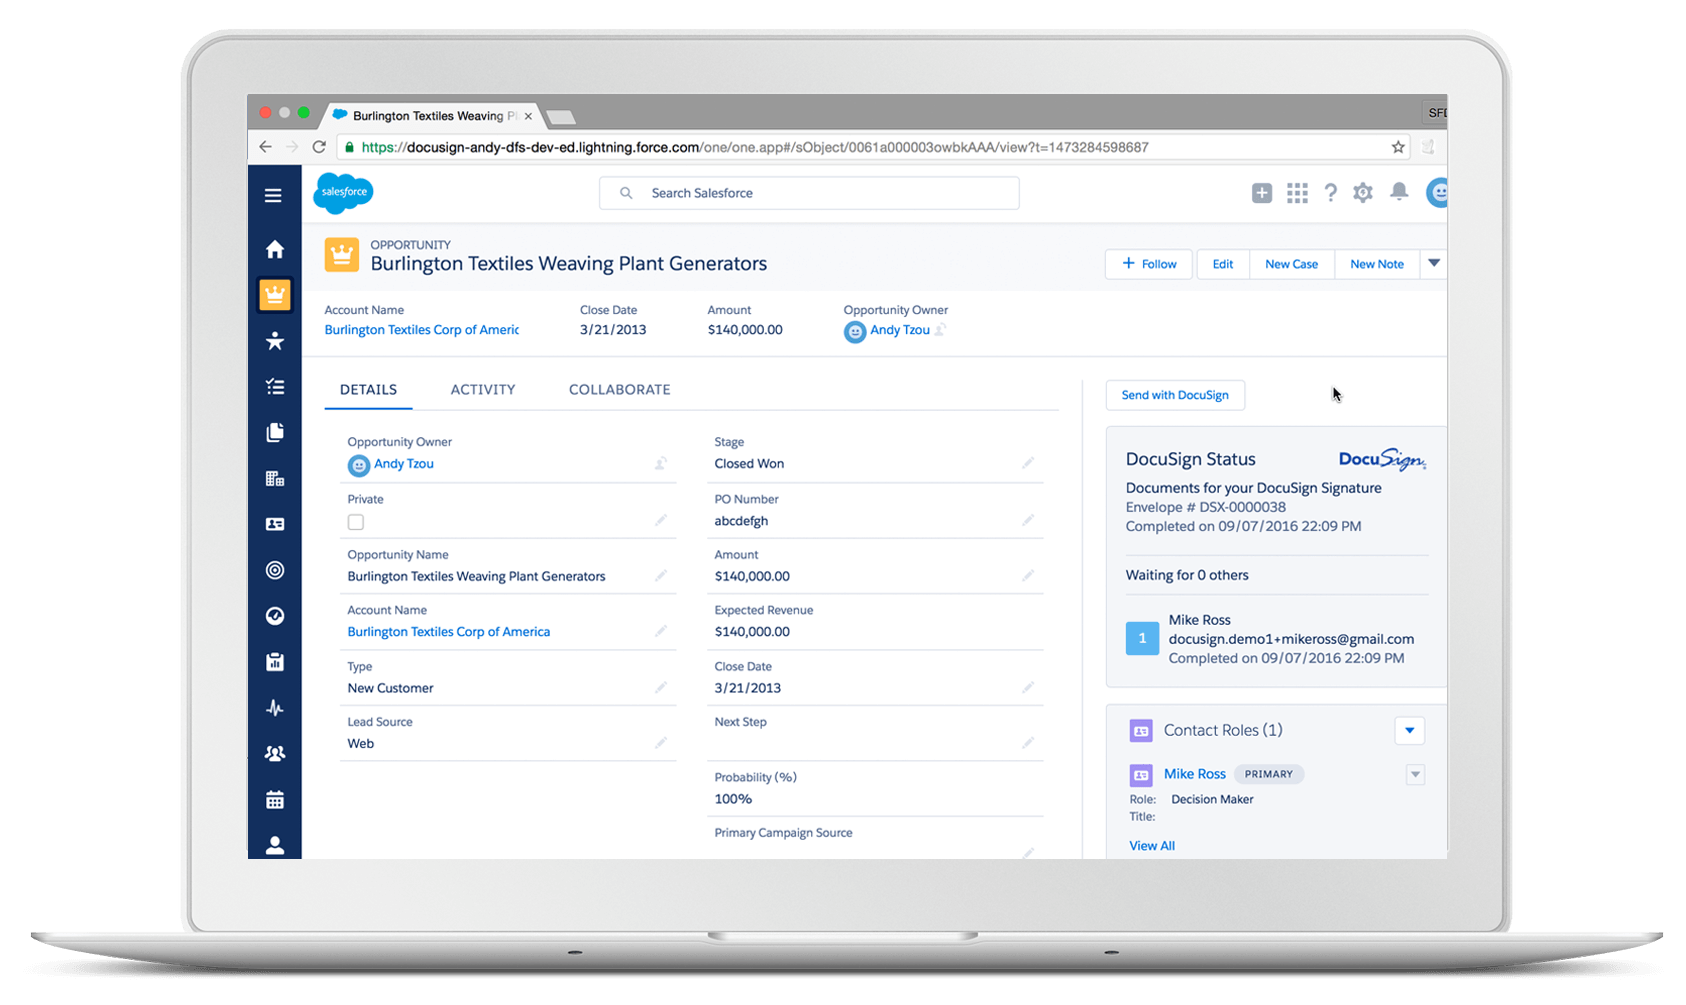 Wij introduceren DocuSign voor Salesforce Lightning